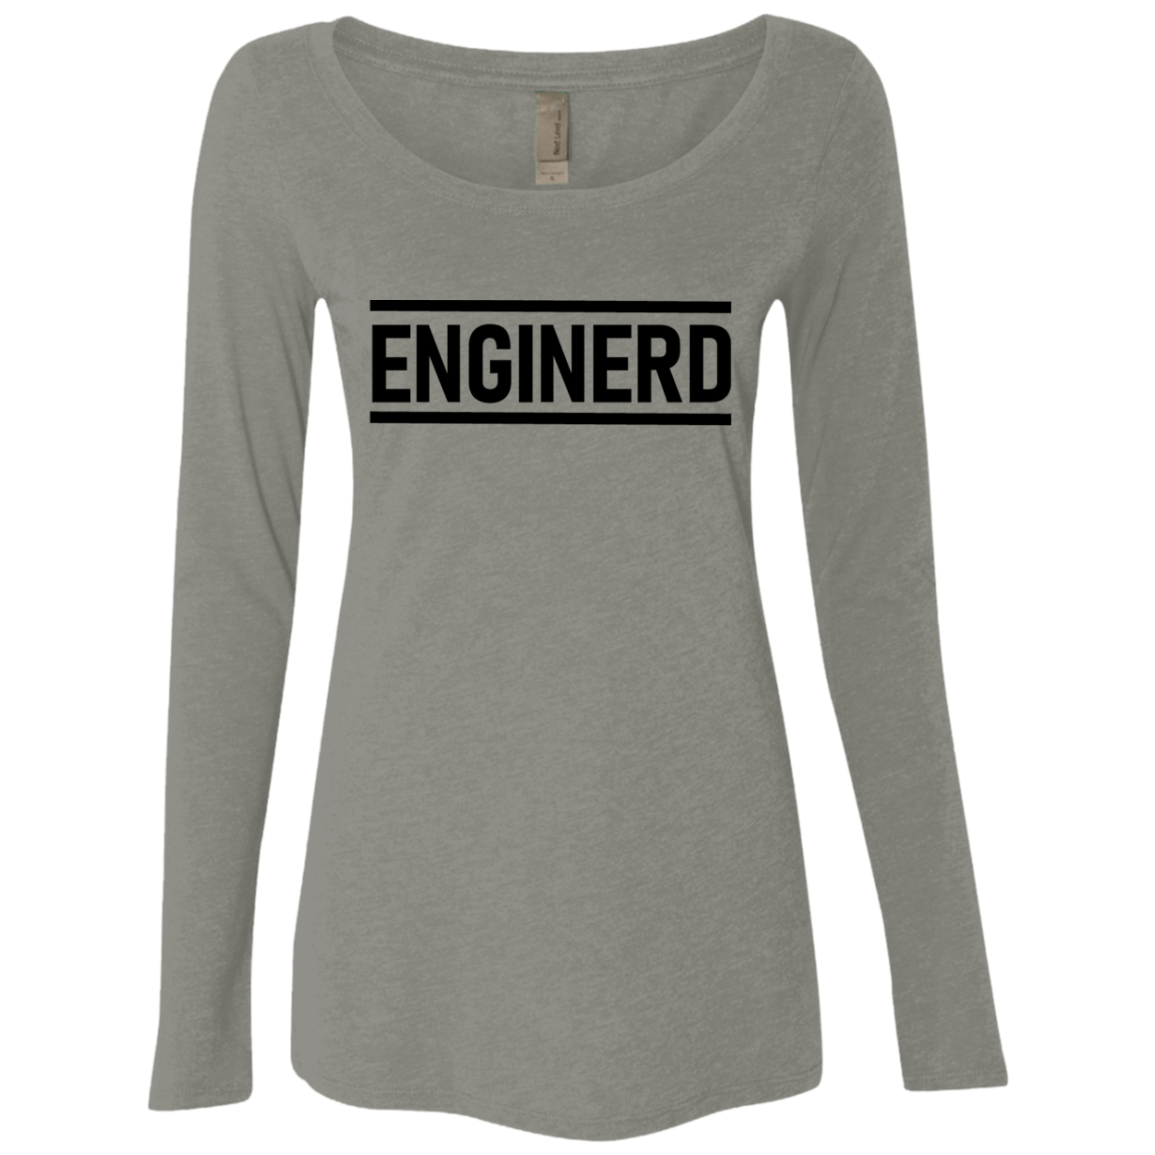 Enginerd Women's Long Sleeve Tee